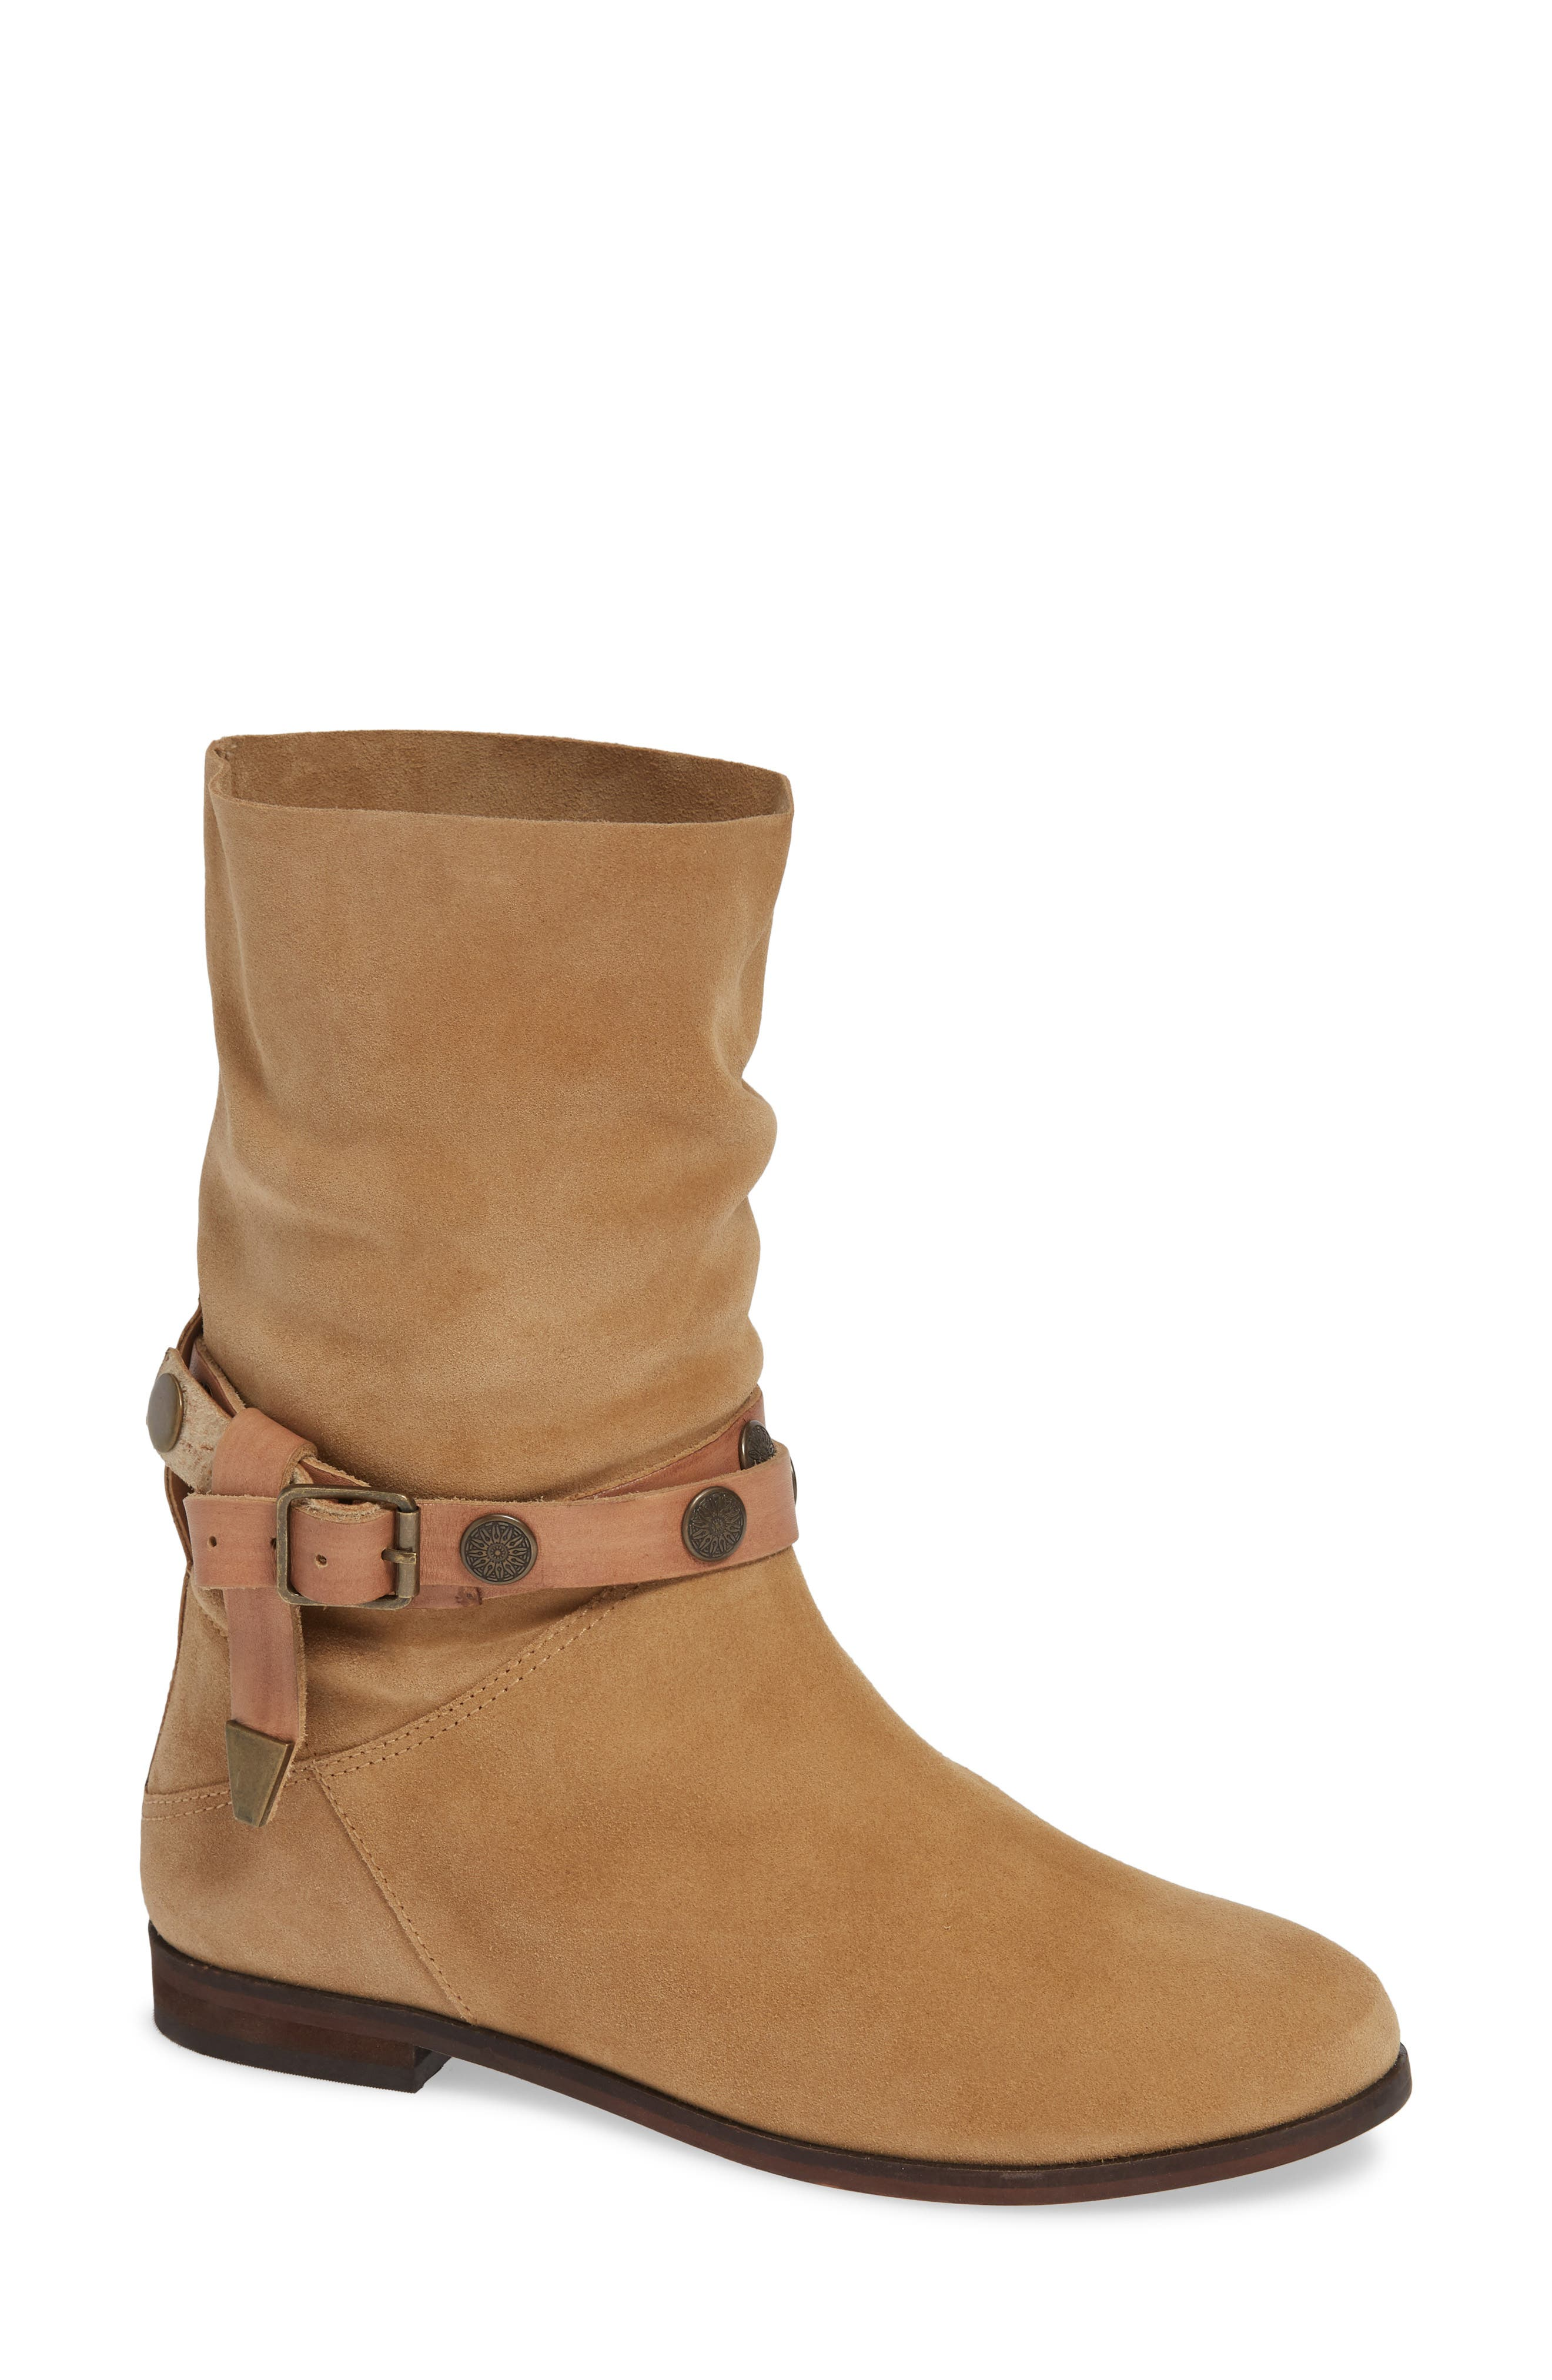 FREE PEOPLE Hayden Buckle Strap Boot, Main, color, SAND SUEDE